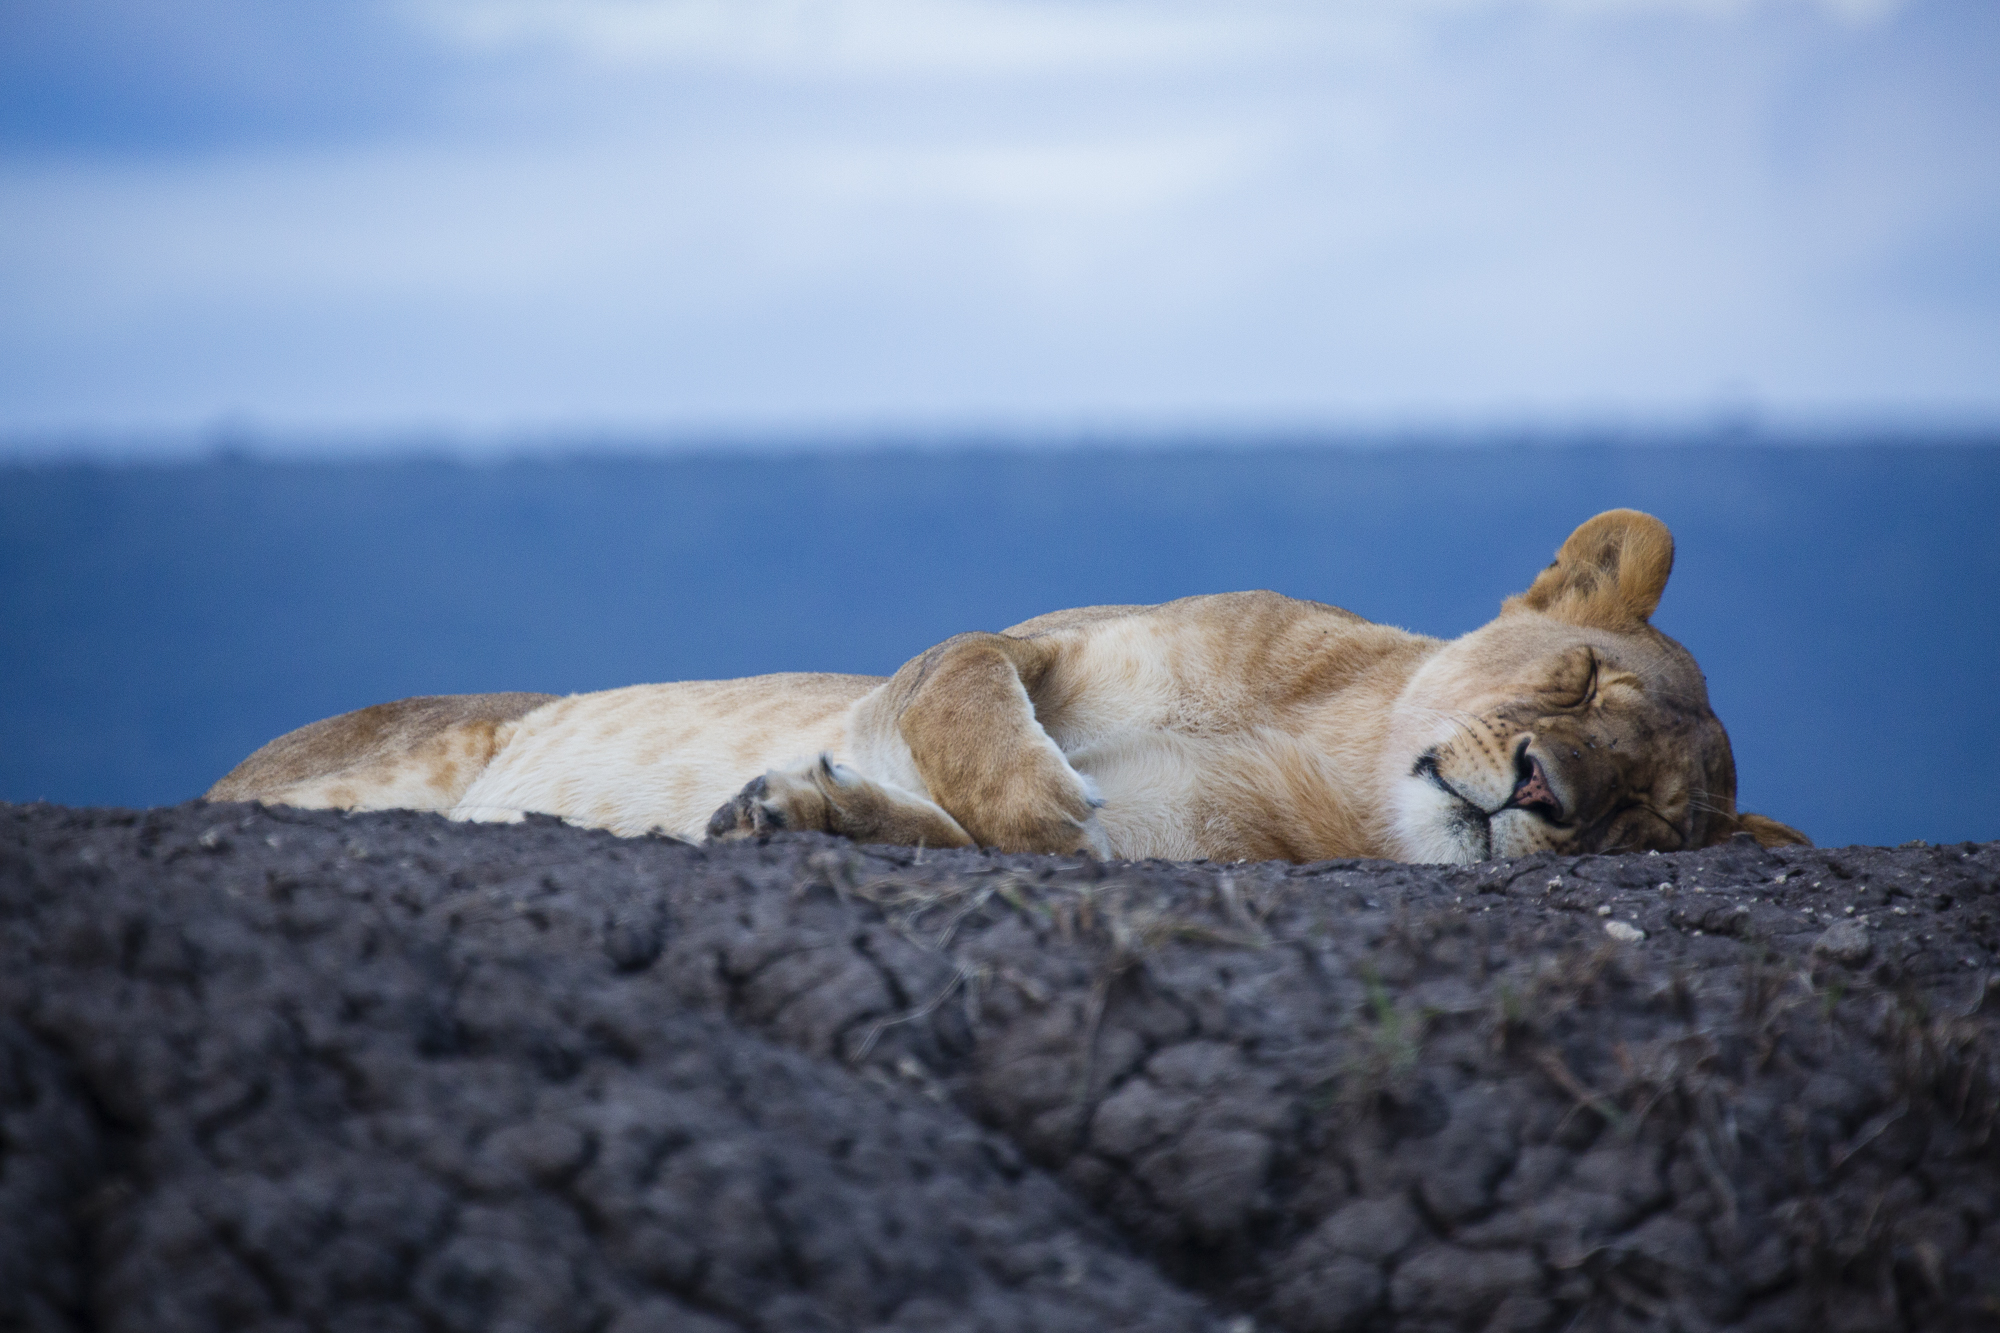 A lioness sleeps at dusk atop an dirt mound, in the Maasai Mara National Reserve in Kenya.